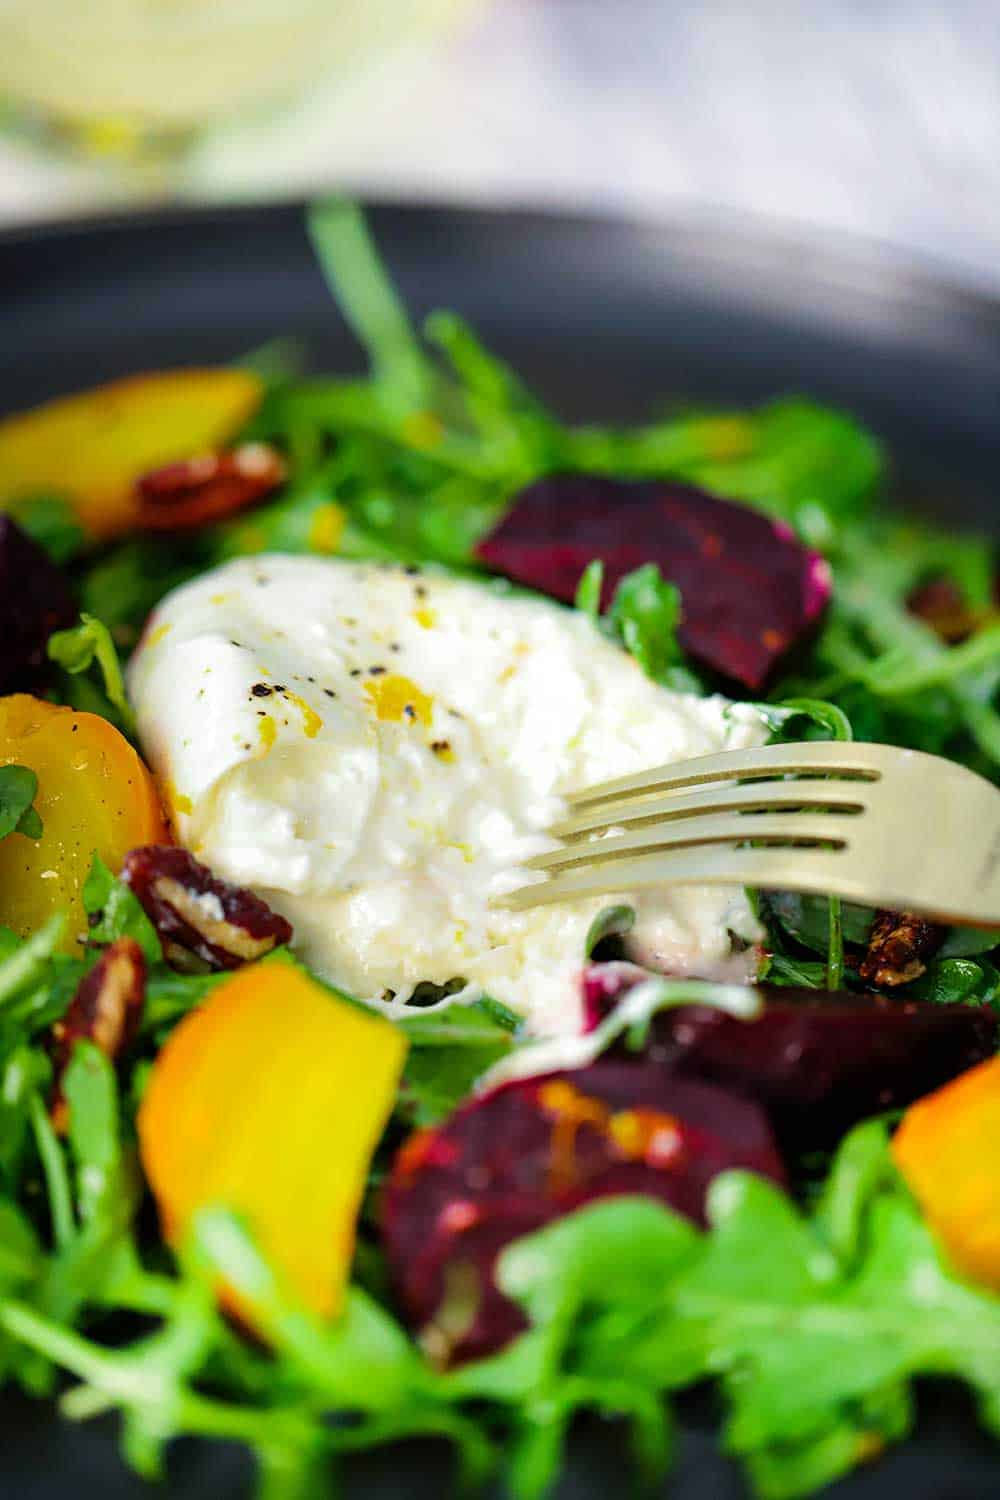 A fork breaking open a ball of burrata cheese sitting on top of sliced roasted beets and arugula salad.